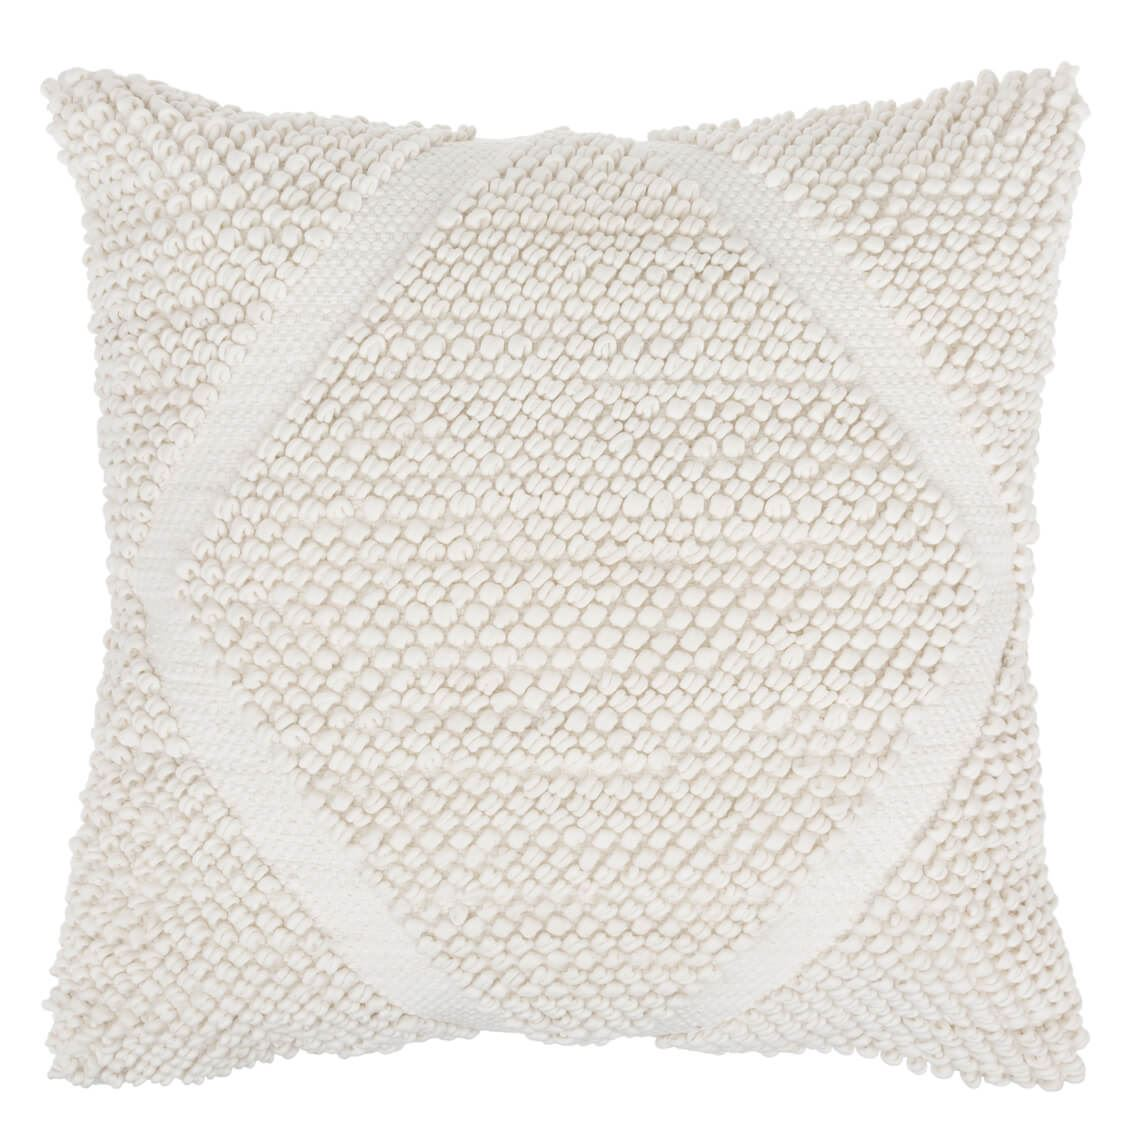 Belmore Cushion Size W 50cm x D 11cm x H 50cm in White Freedom by Freedom, a Cushions, Decorative Pillows for sale on Style Sourcebook